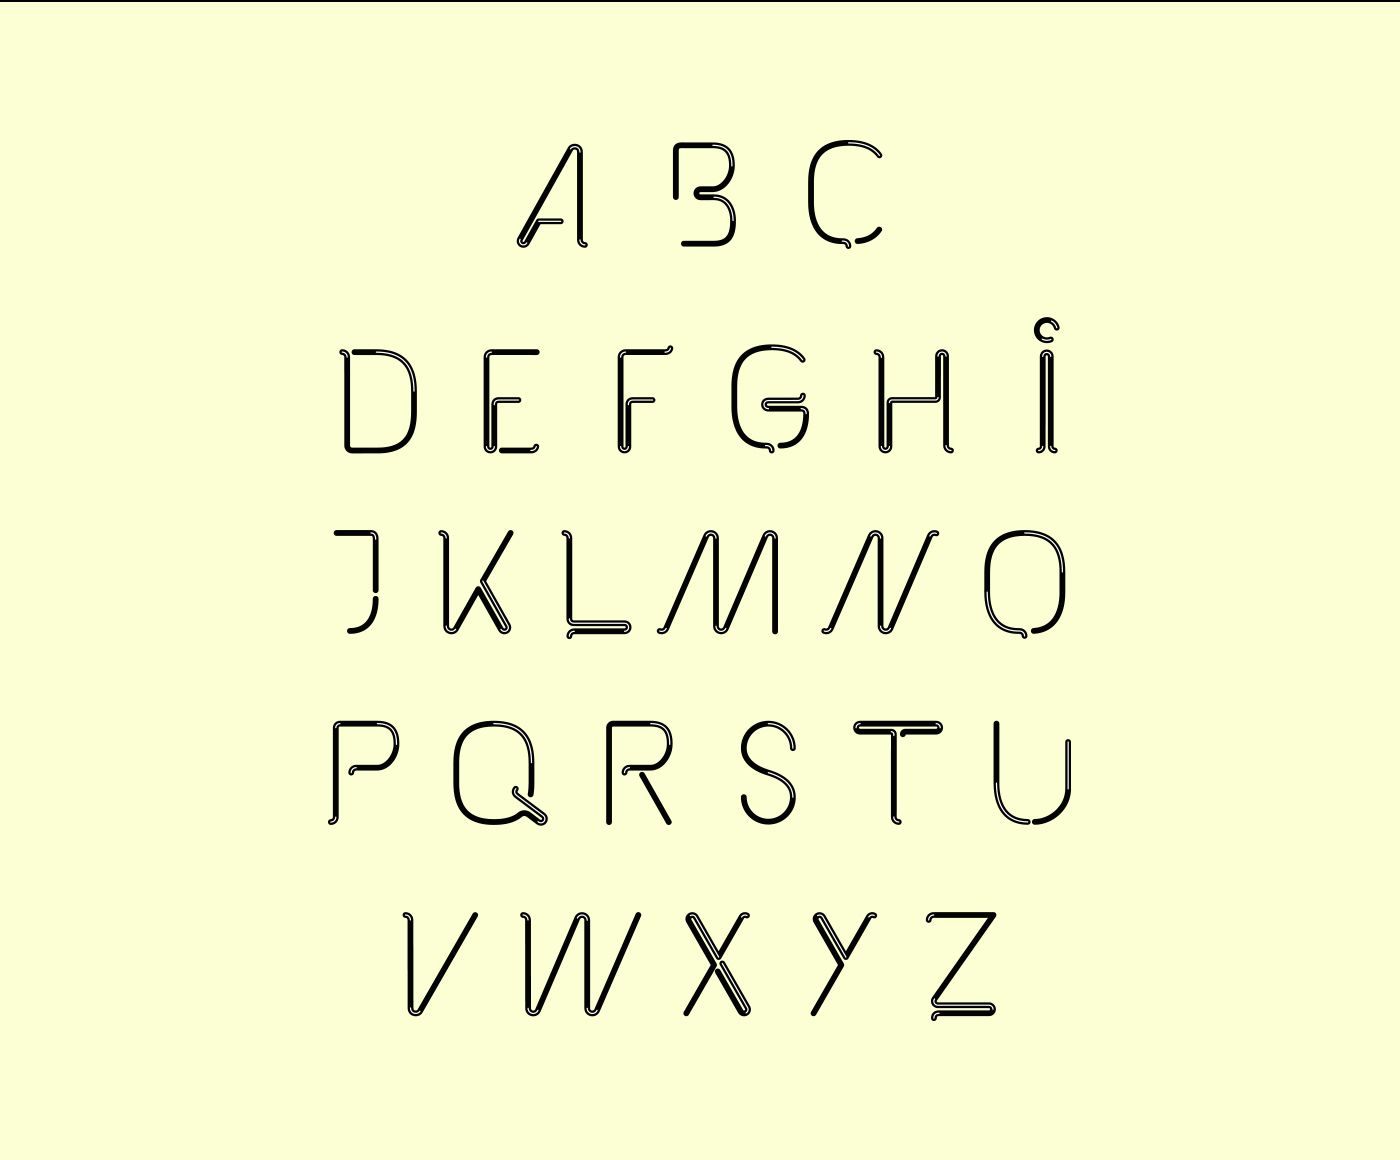 """I spent some rainy days to construct a new font, called """"The Kabel Font"""". Hope you like it."""